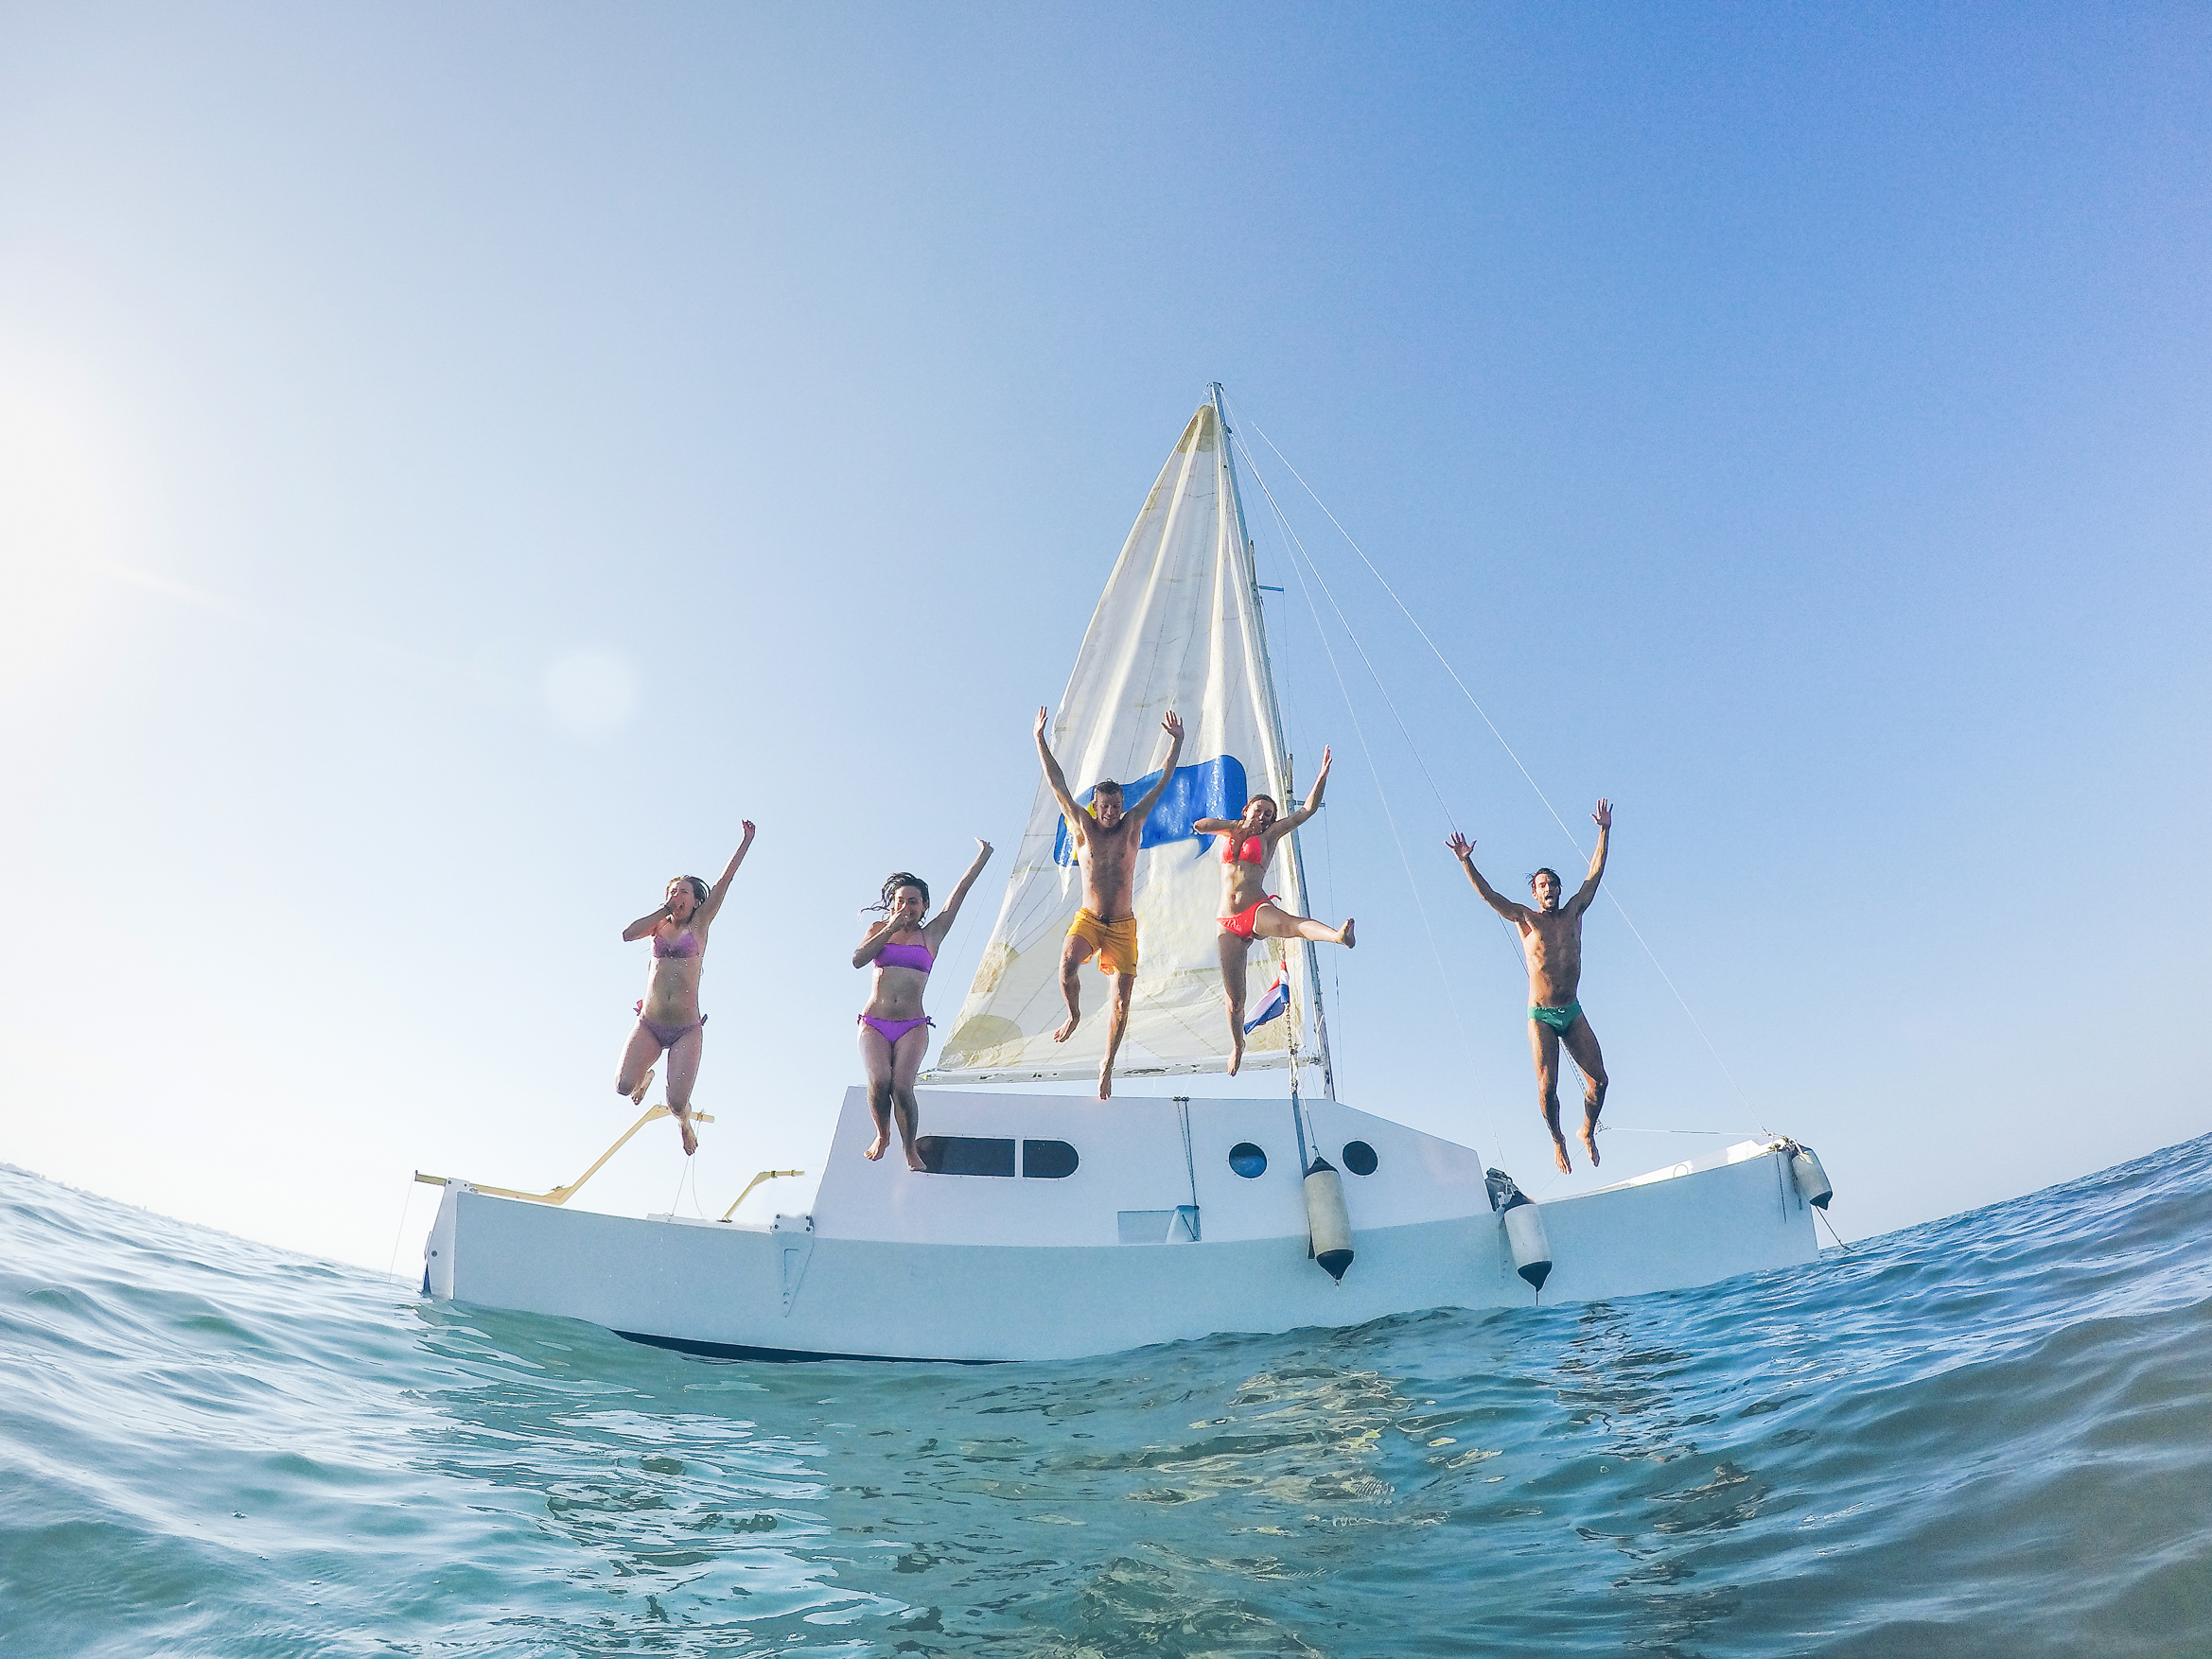 Splash Out On The Water With These Boat Rentals In Miami Beach!